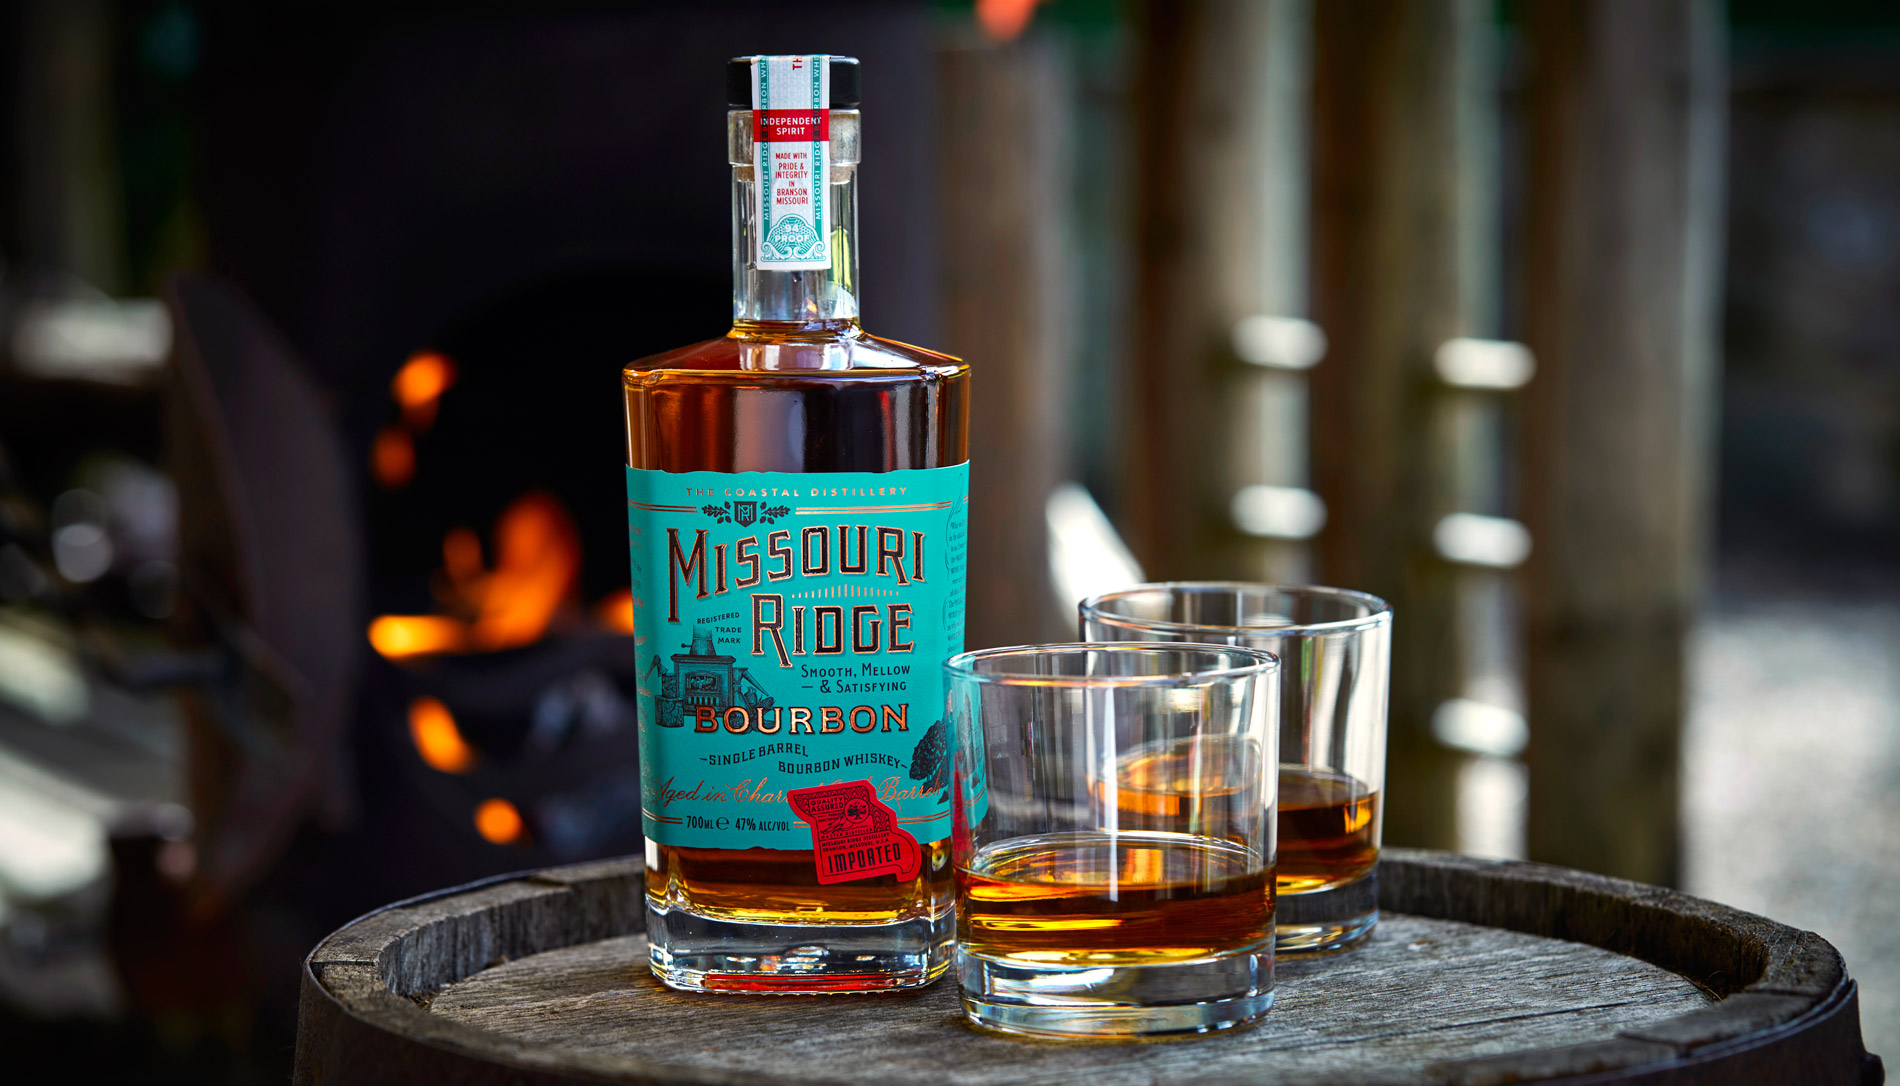 Missouri Ridge Bourbon Whiskey